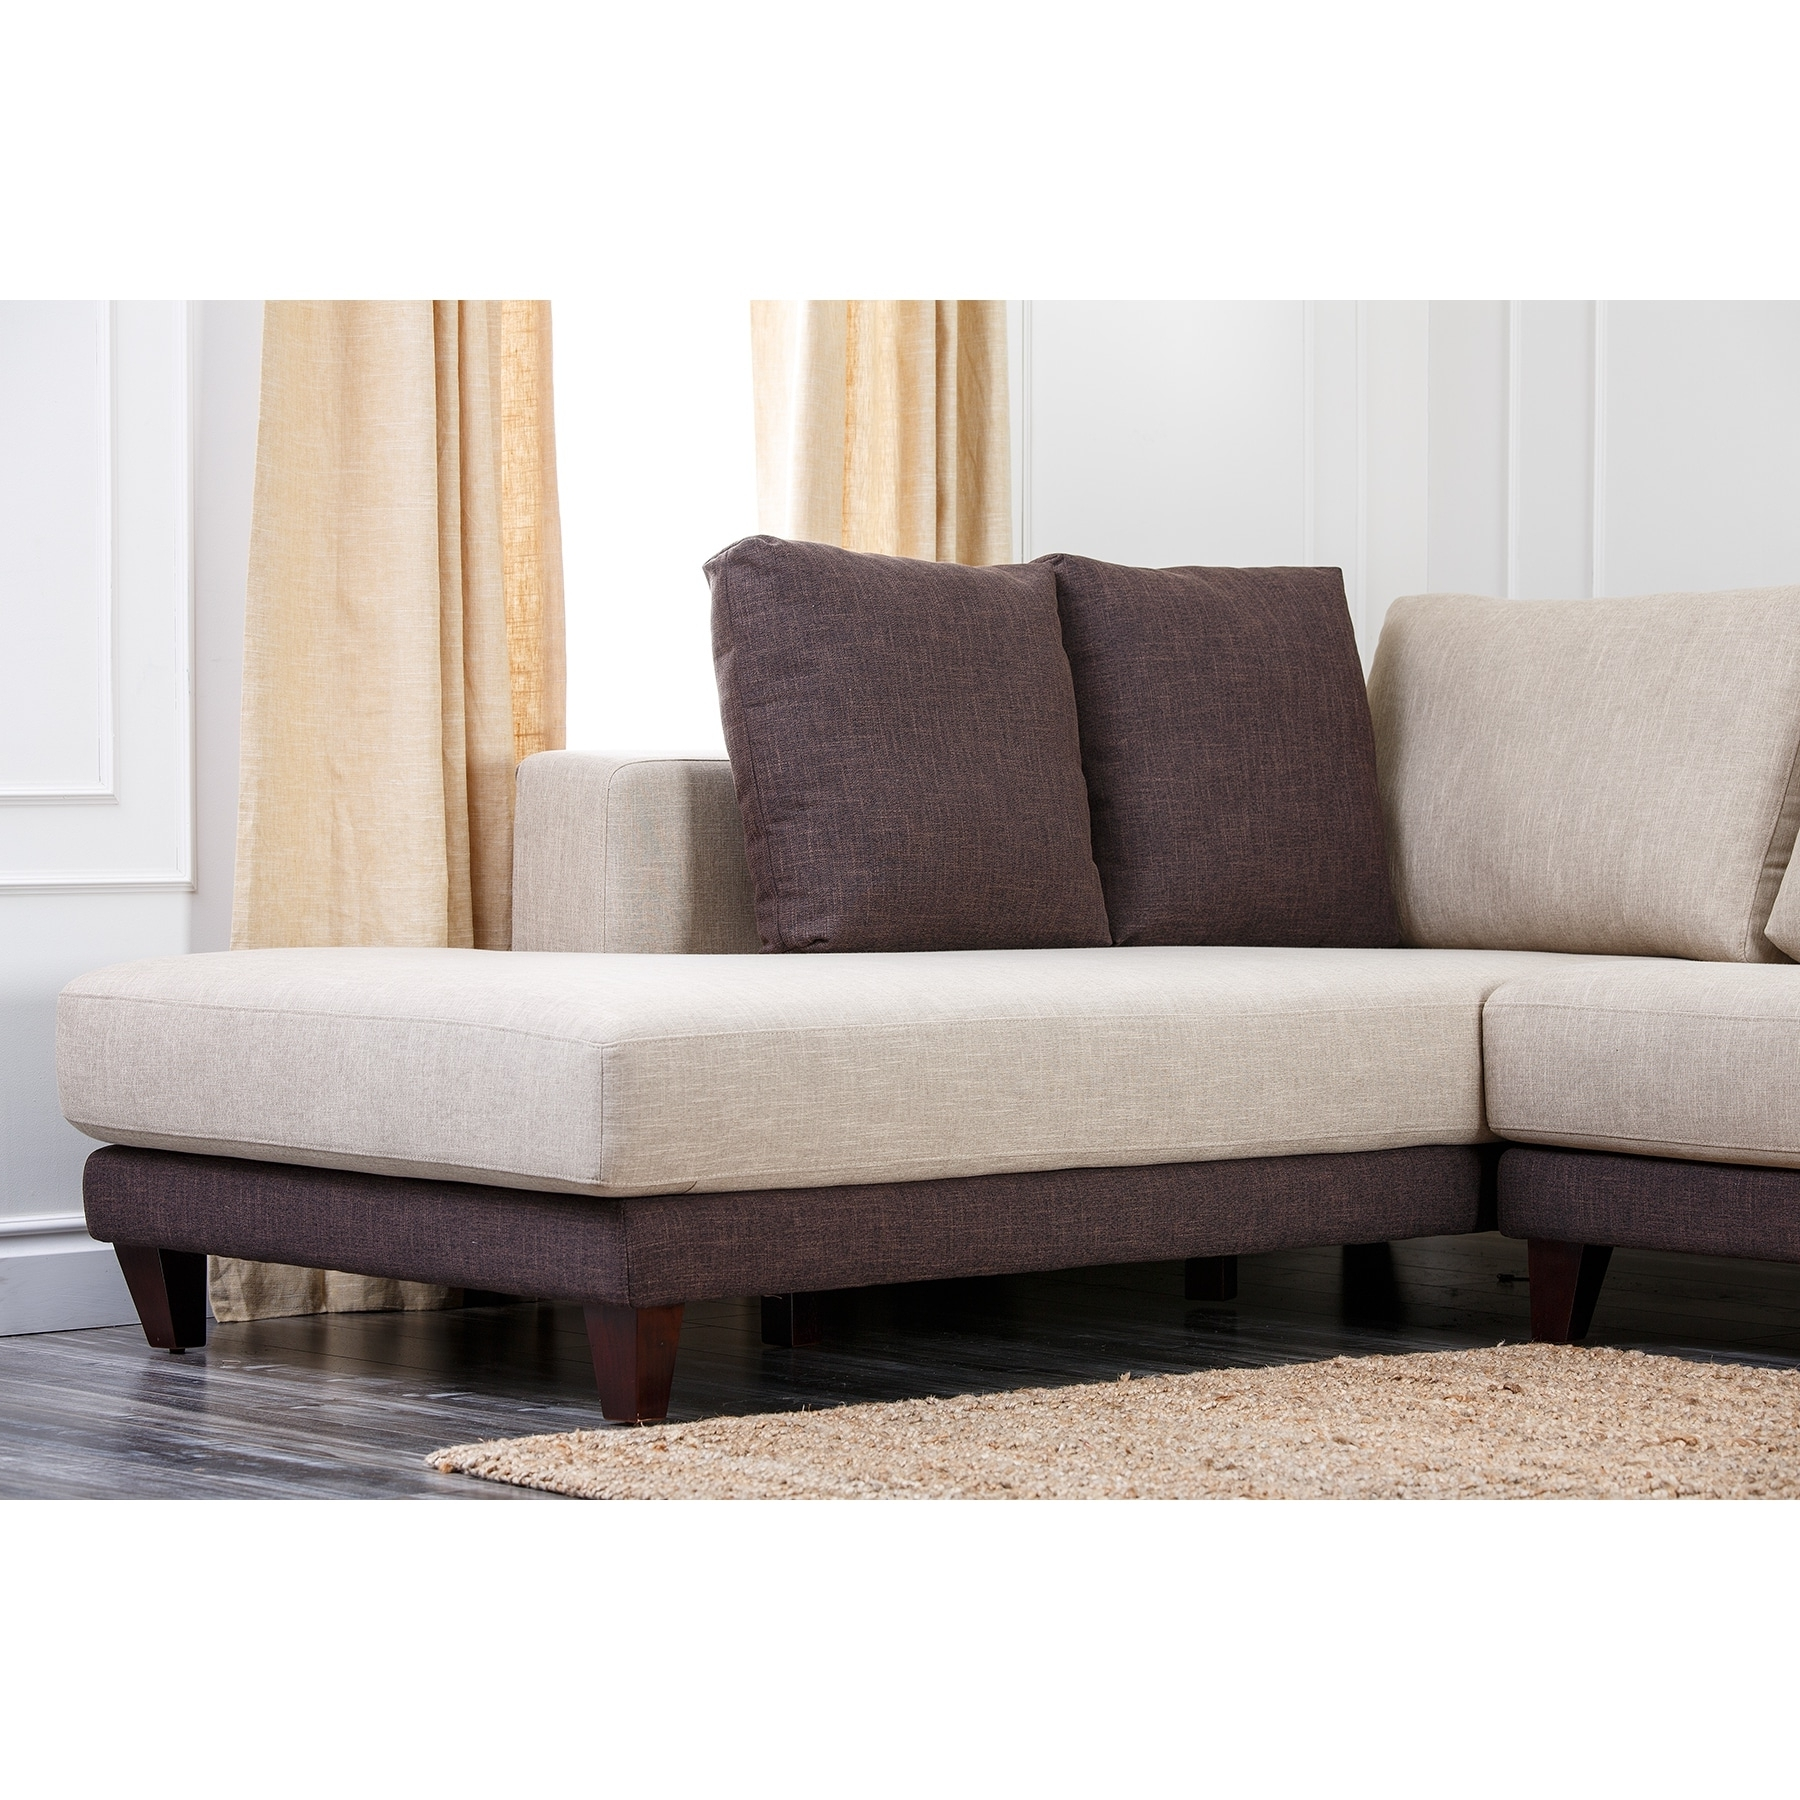 Best And Newest Abbyson 'verona' Fabric Sectional Sofa – Free Shipping Today Inside Fabric Sectional Sofas (View 18 of 20)